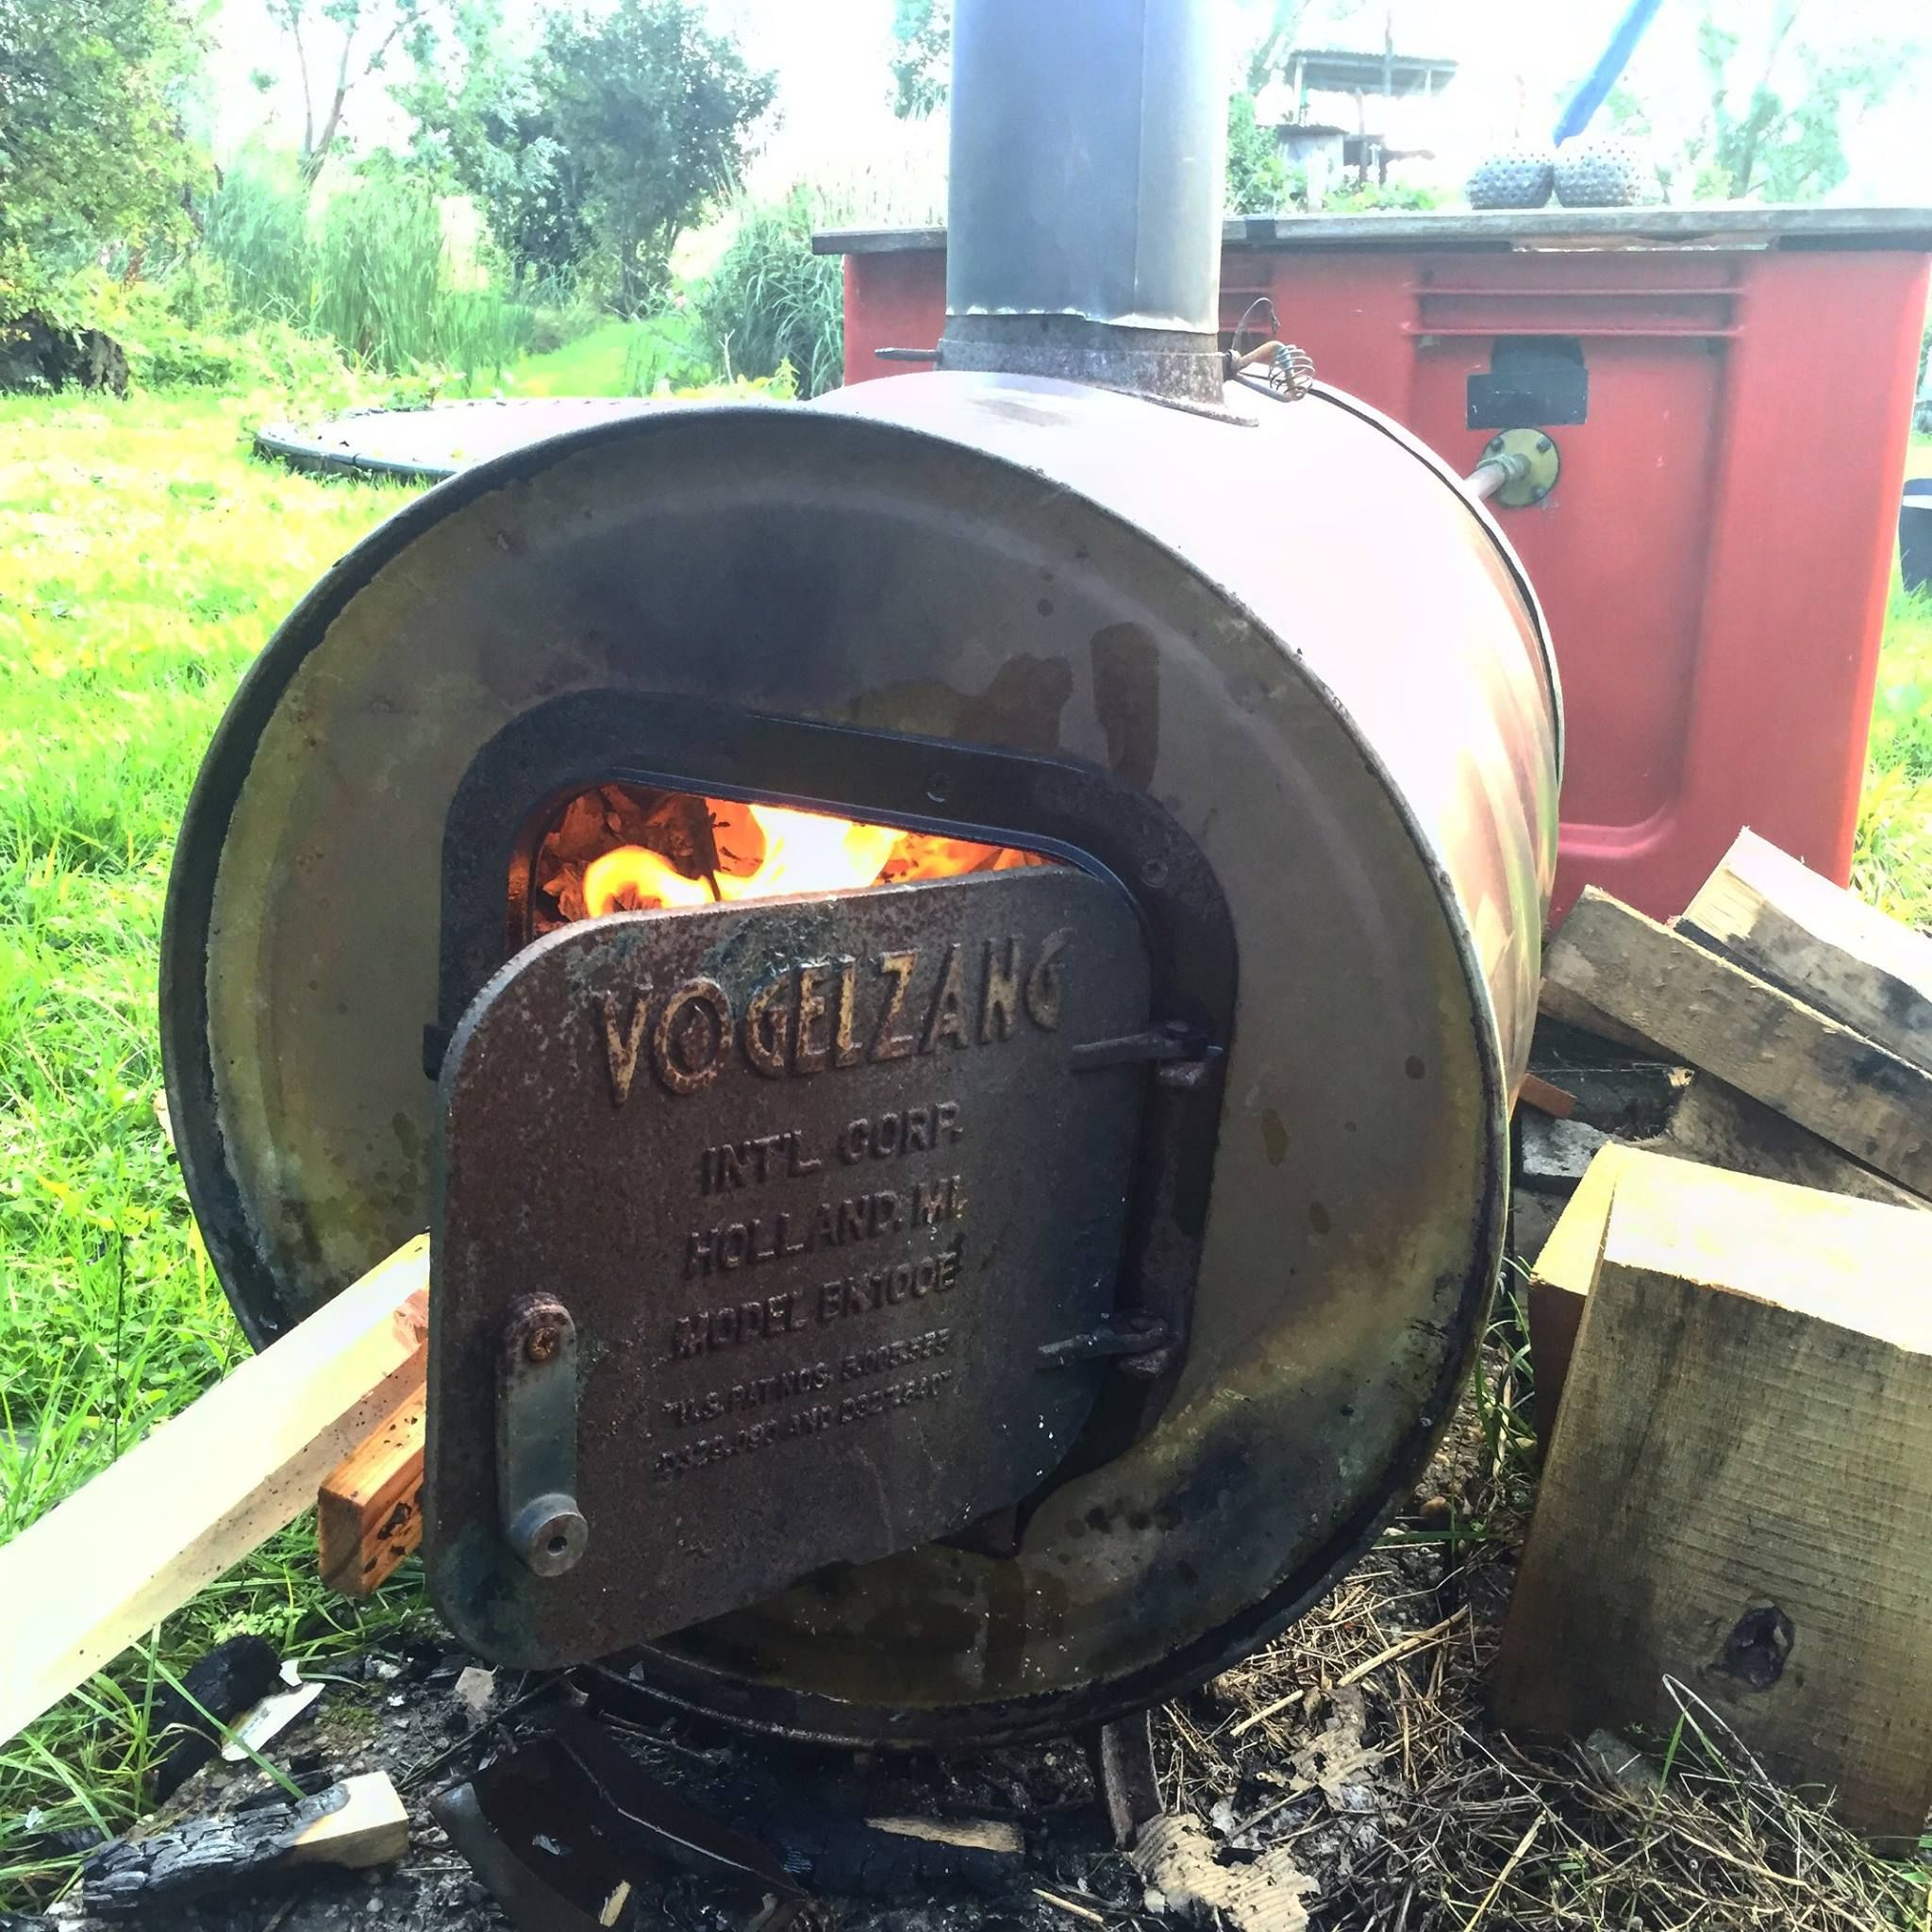 an old oil barrel , the best is a stainless one. and a Vogelzang stove kit.http://www.amazon.com/Vogelzang-Barrel-Stove-Model-BK100E/dp/B0018JBFS8